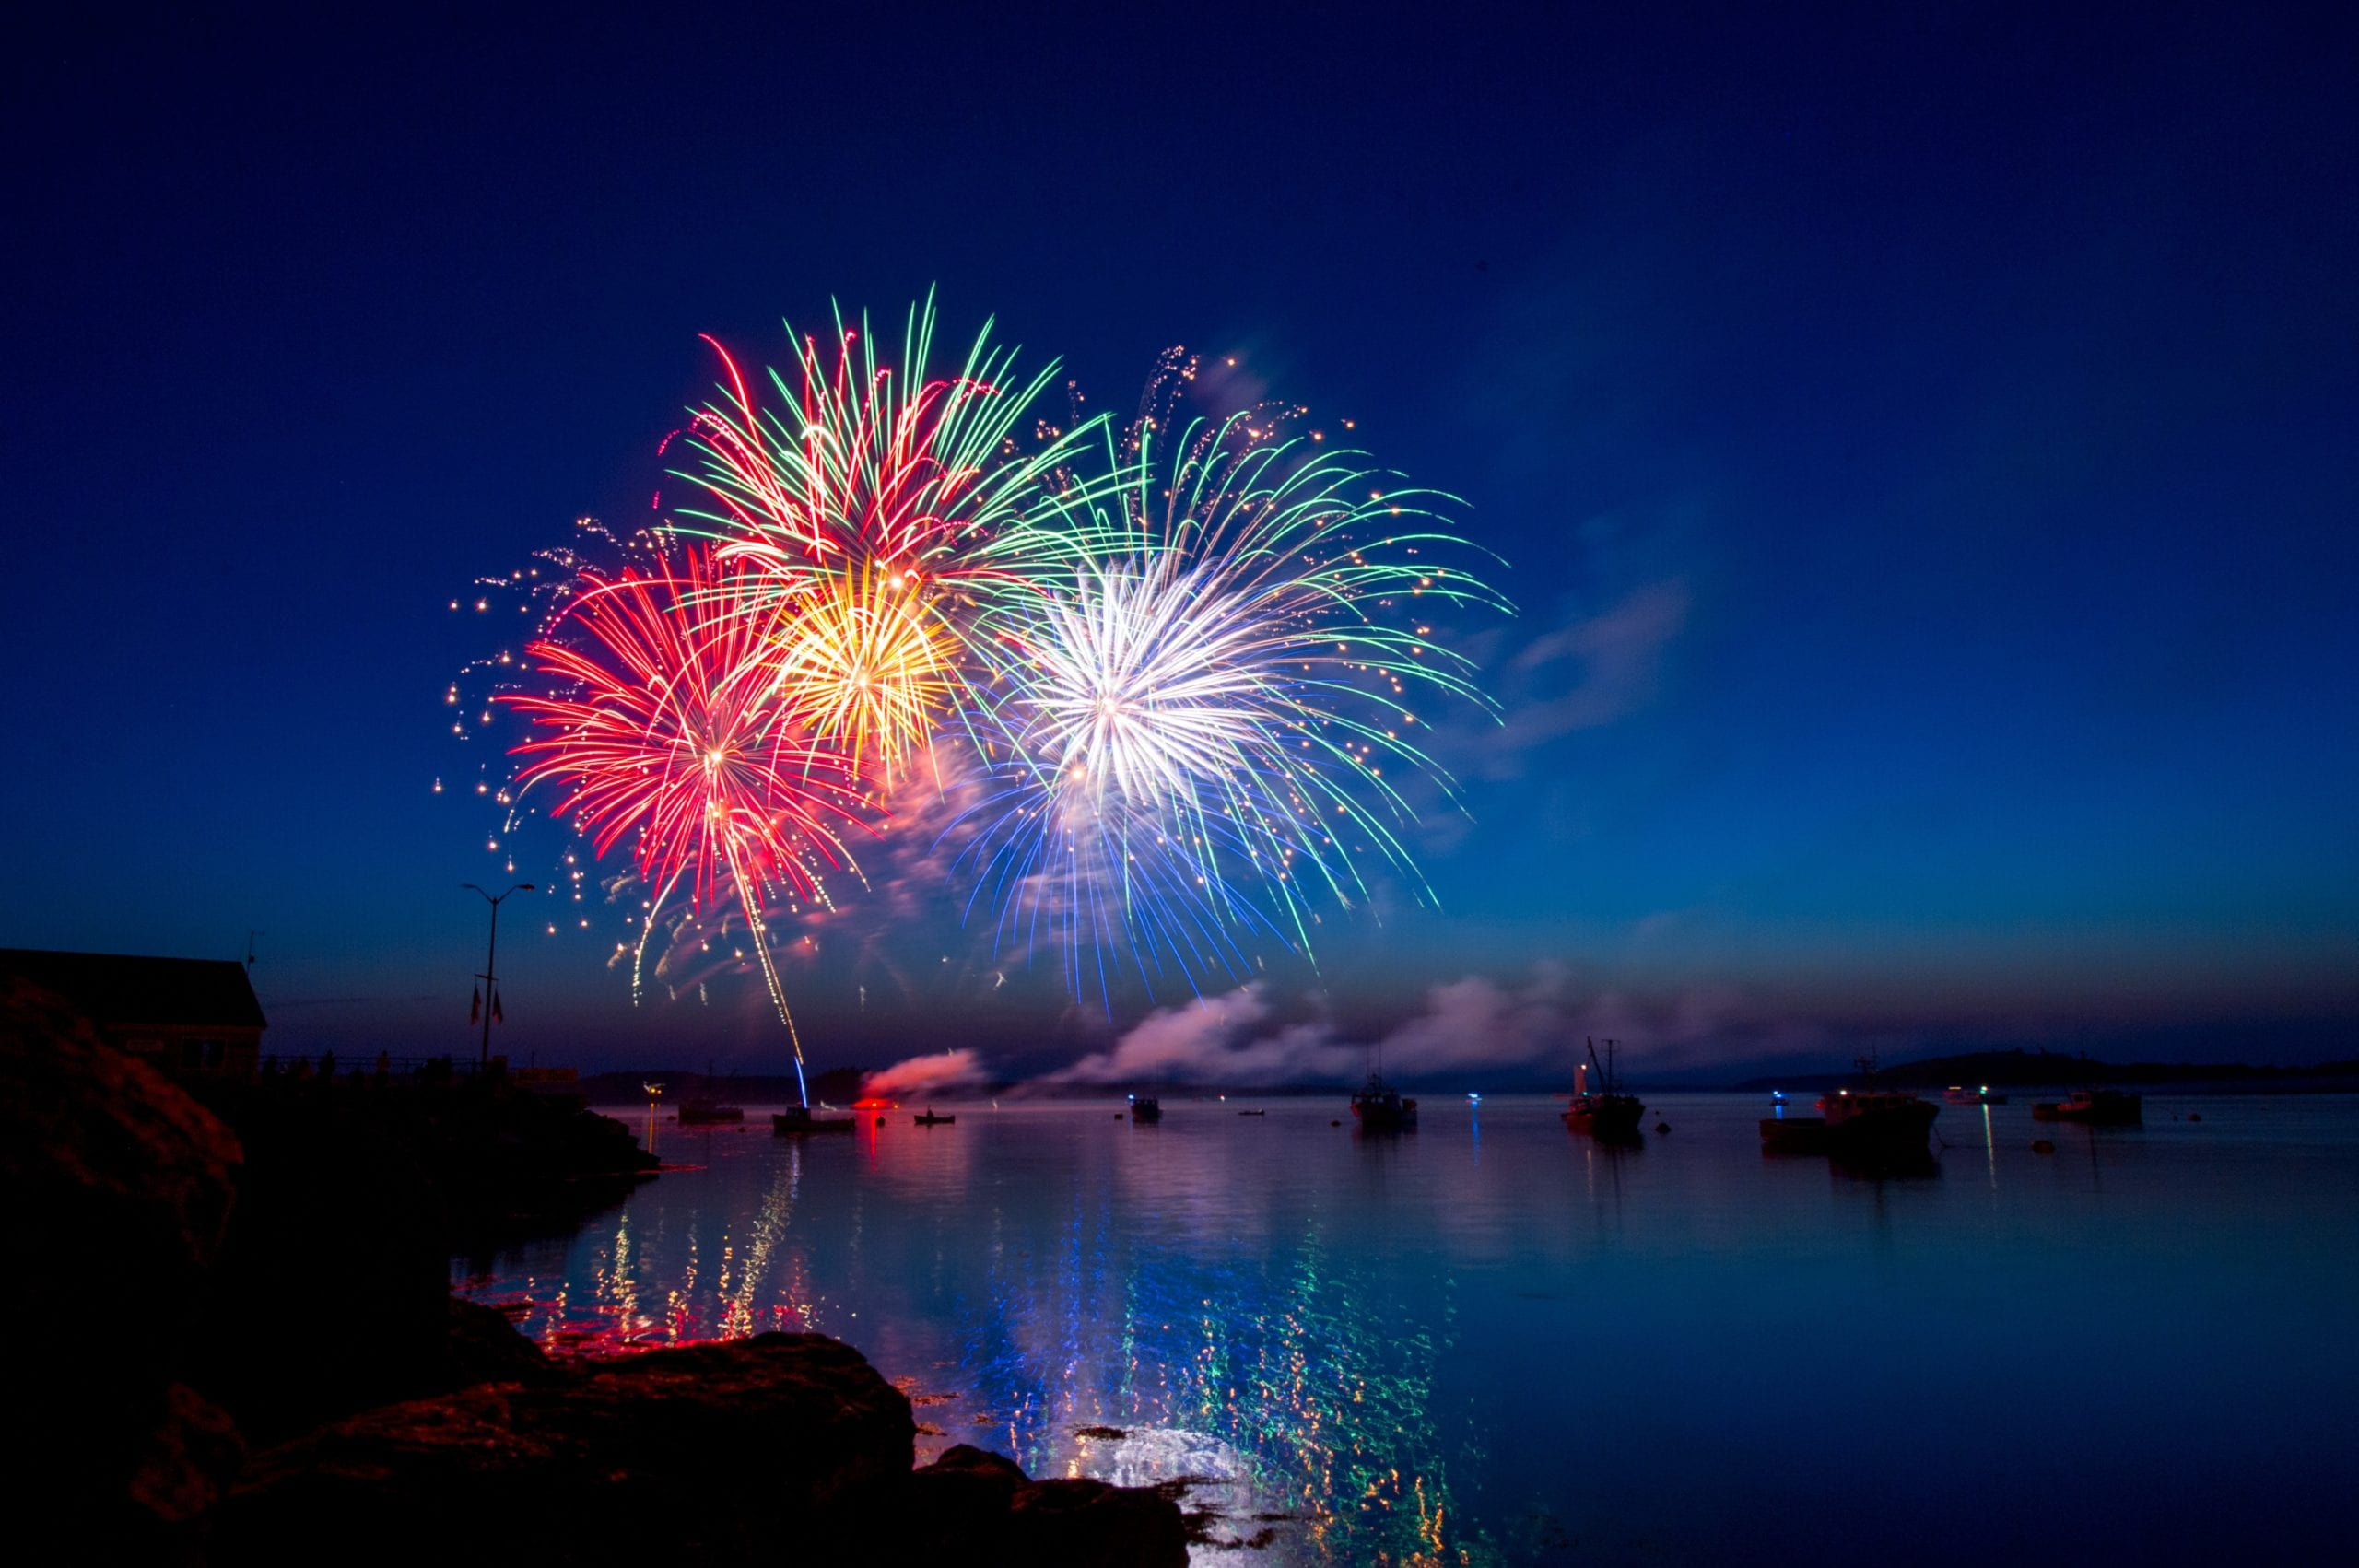 Beyond the Beauty: A Technician's Take on Bringing Fireworks to Life